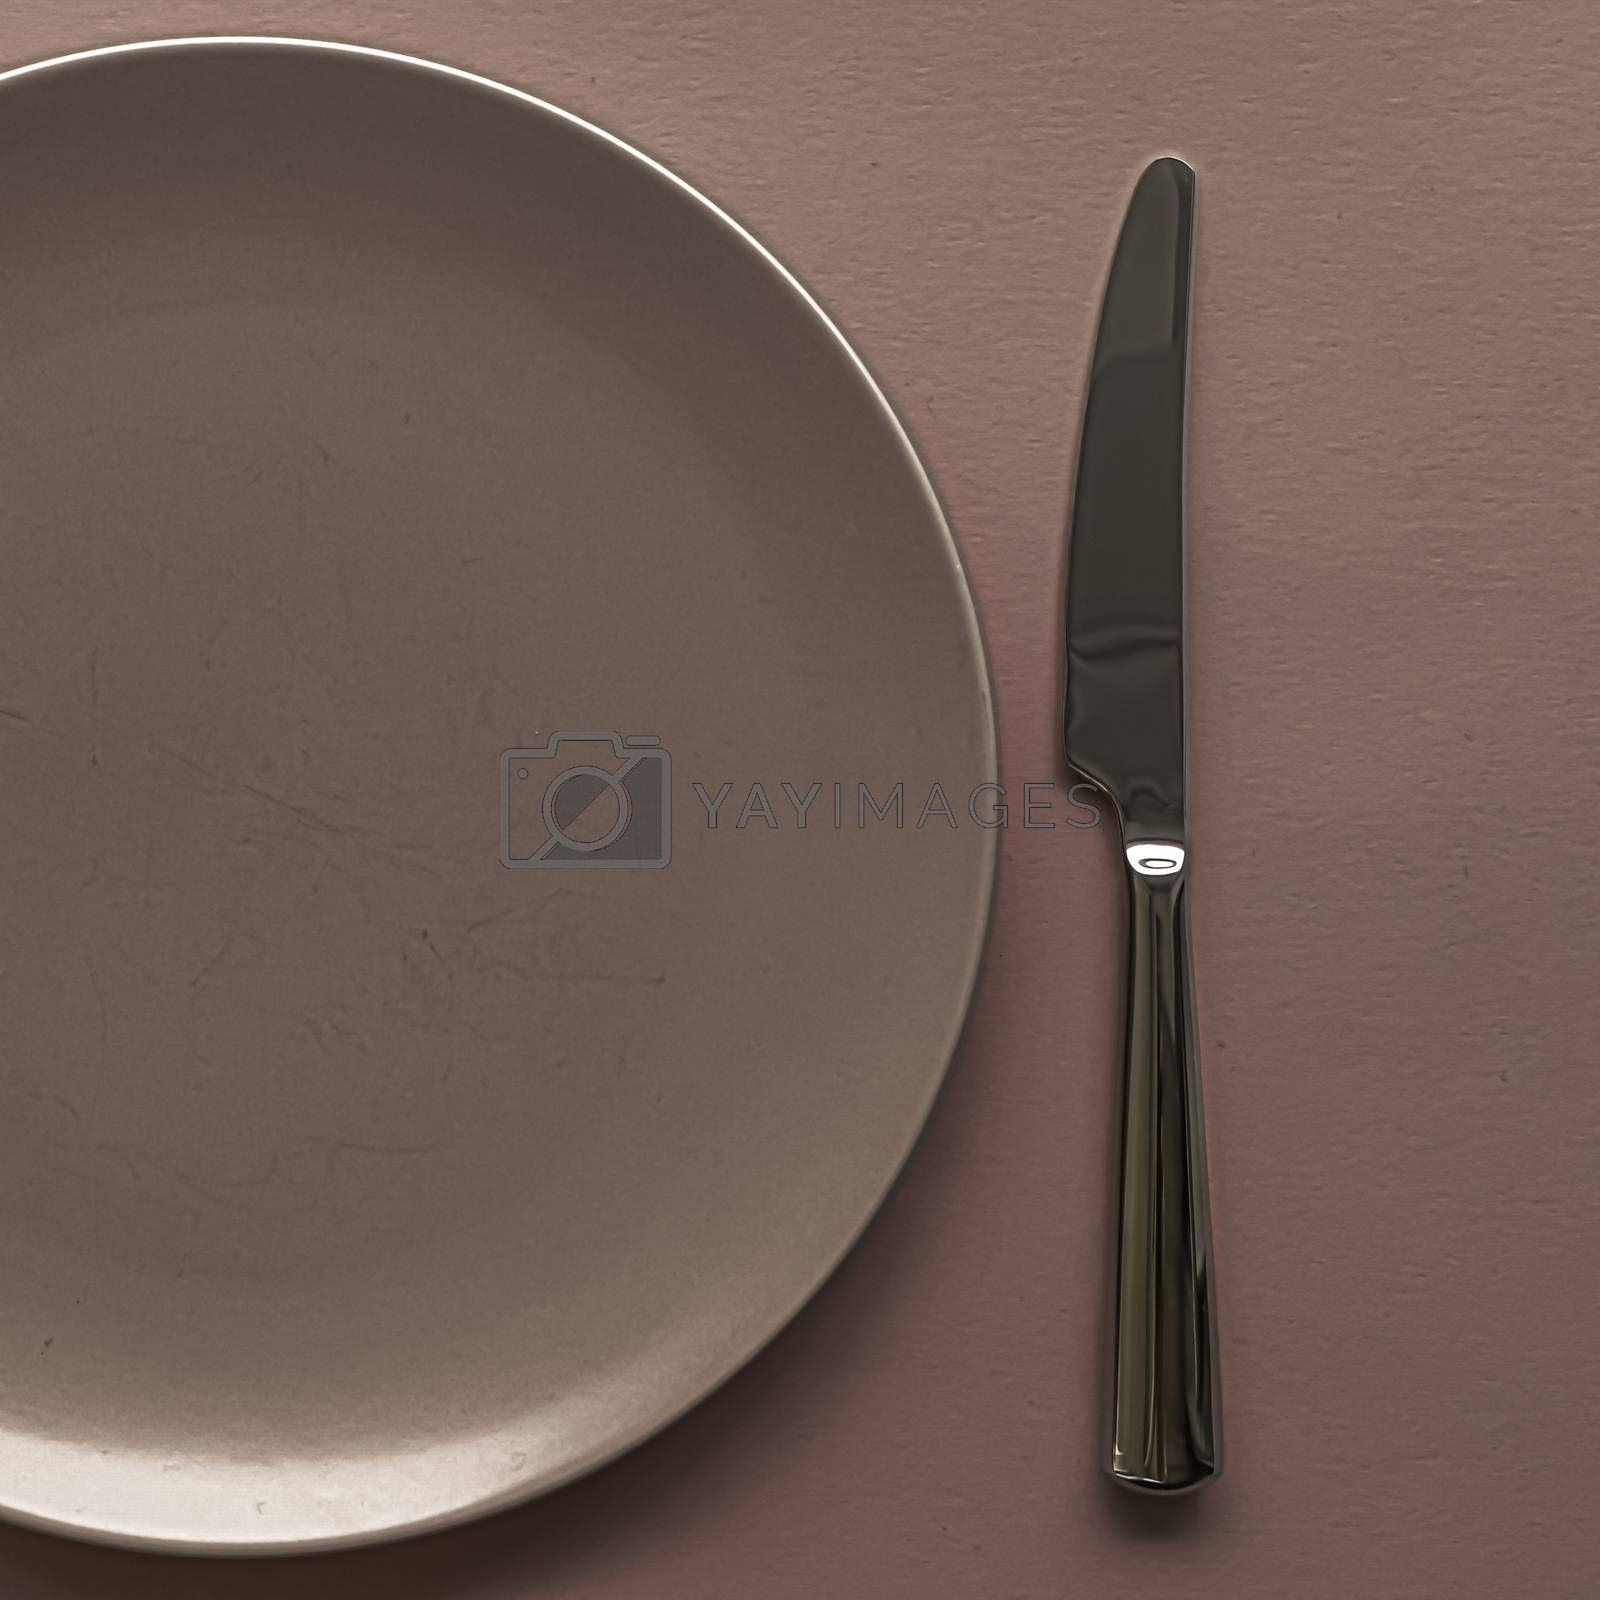 Empty plate and cutlery as mockup set on brown background, top tableware for chef table decor and menu branding design